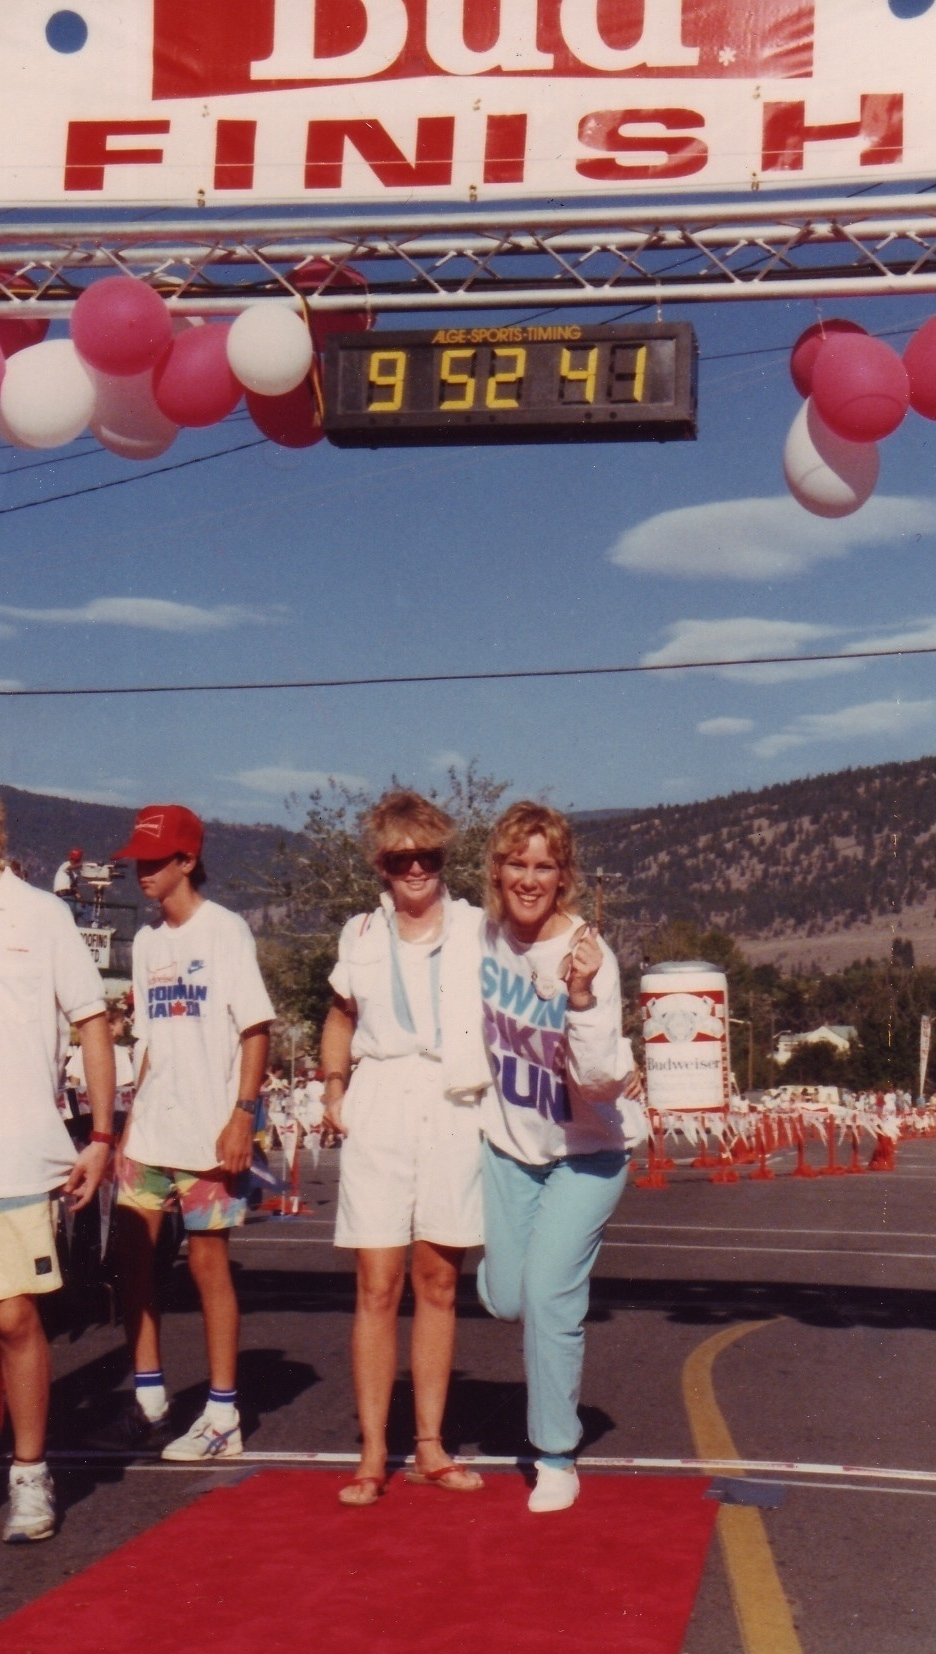 Lynn and Val at finish line edit.jpg